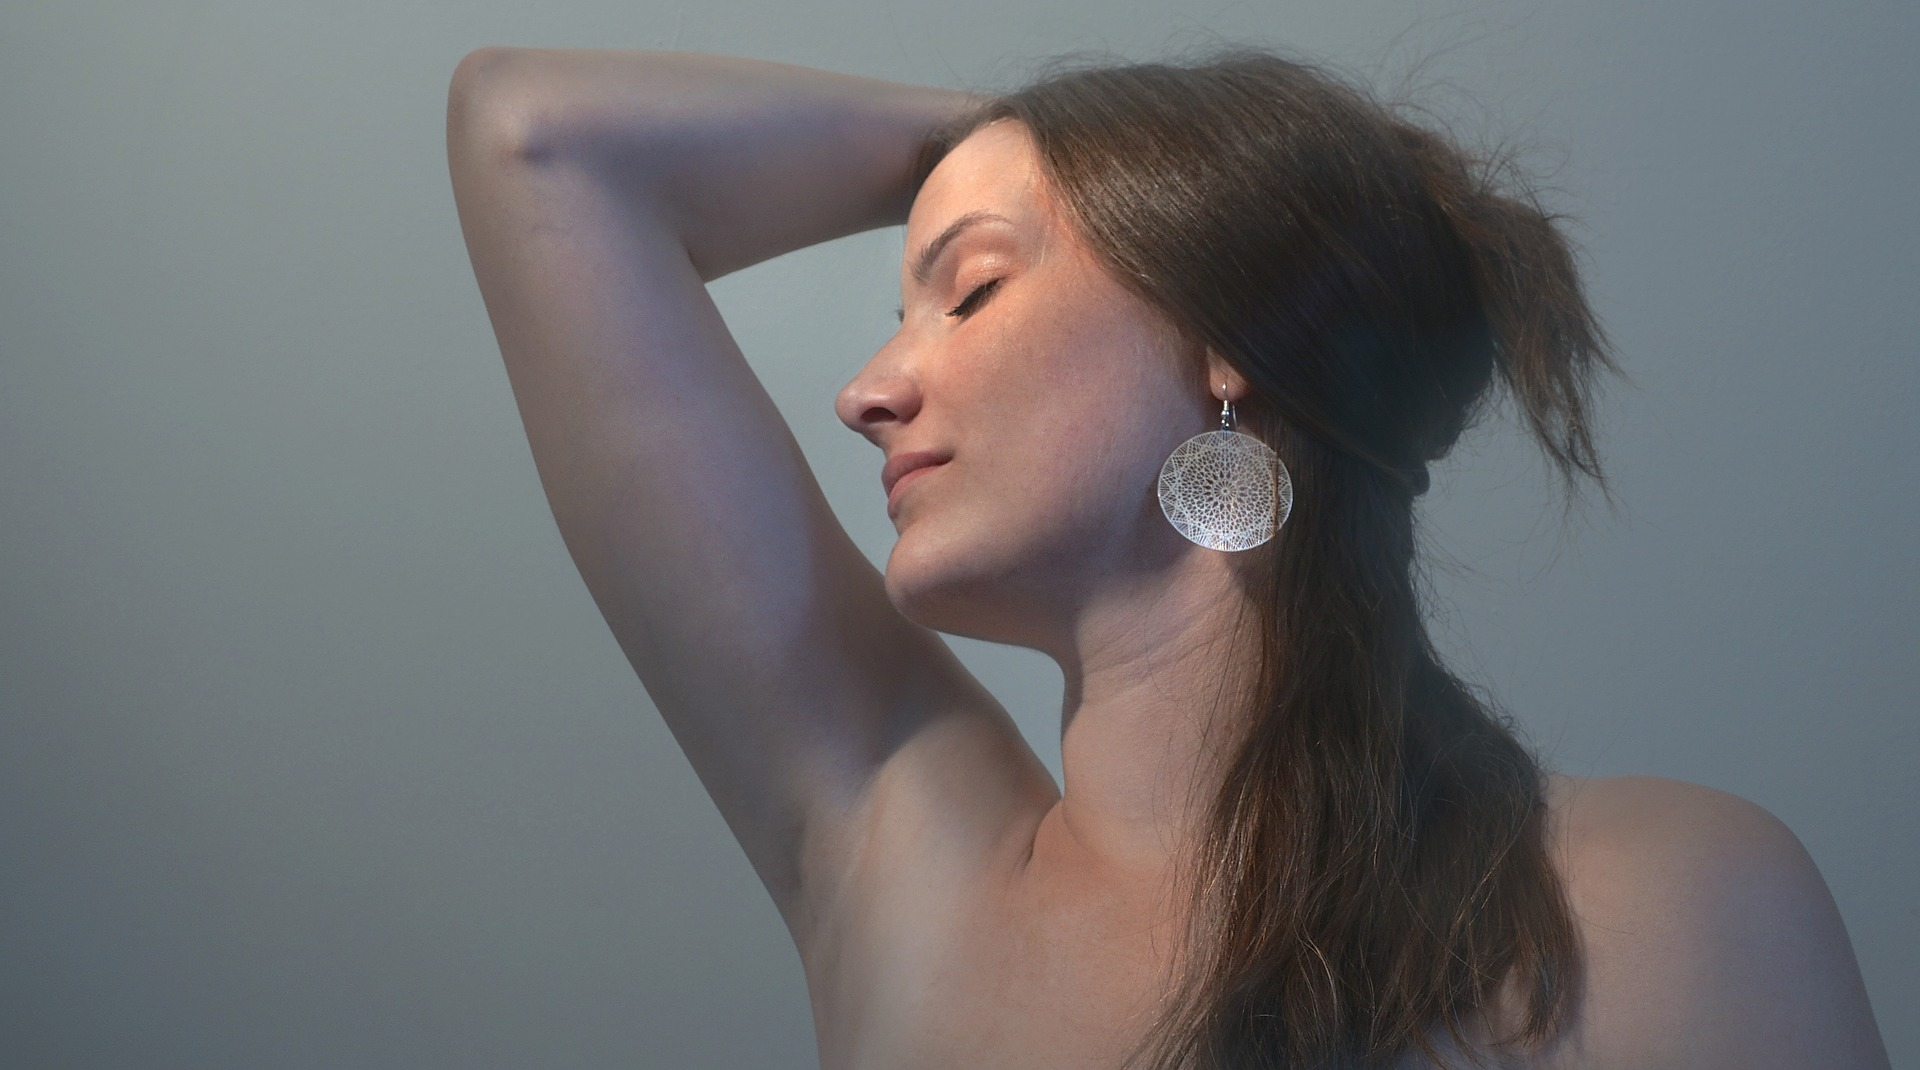 Advantages And Disadvantages Of Wearing Earrings